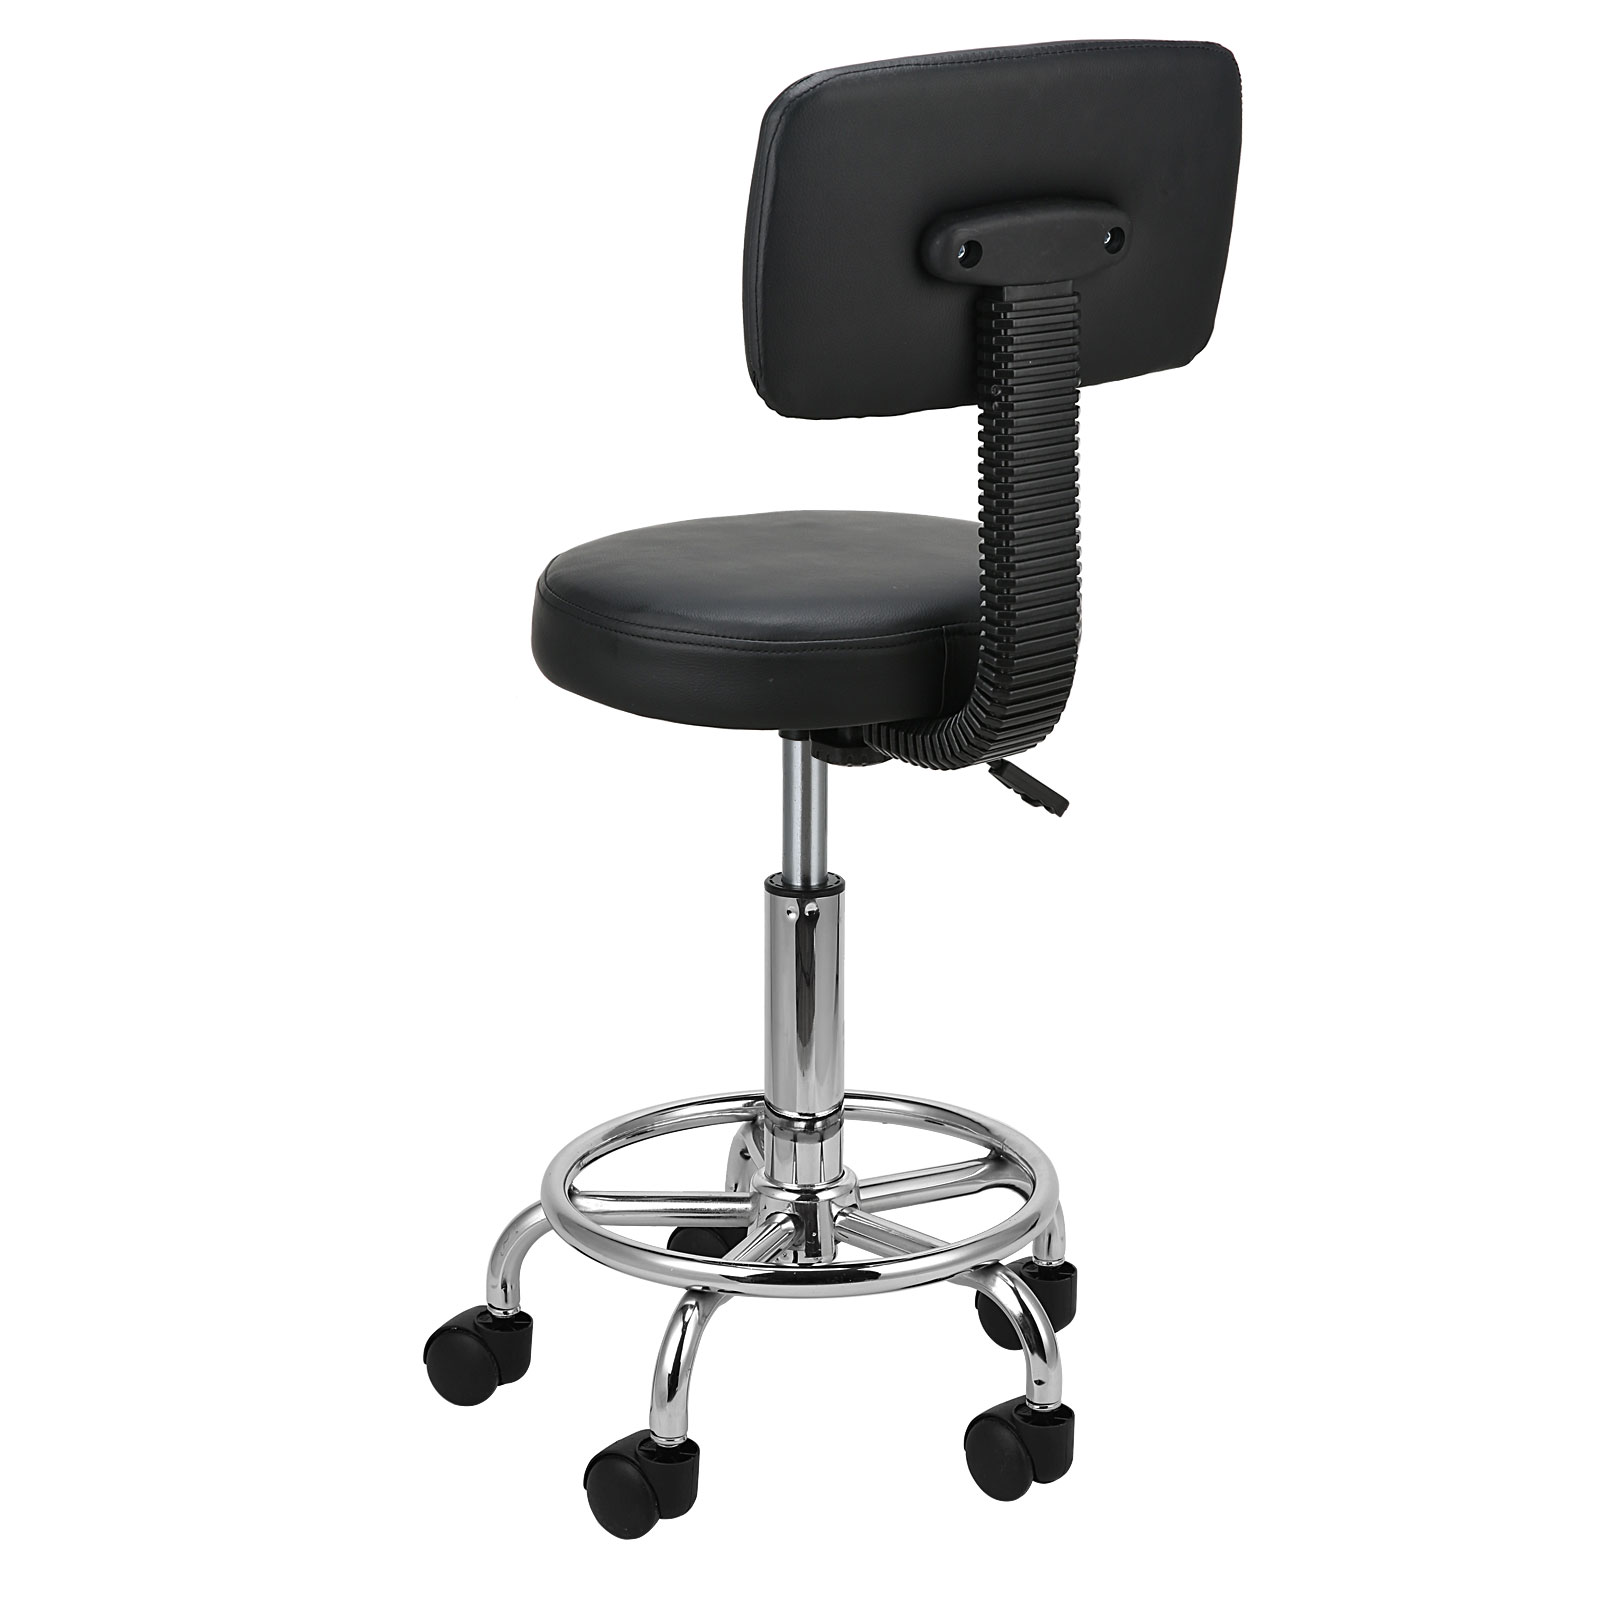 Stool Chair Salon Tattoo Massage Stool Adjustable Beauty Spa Chair